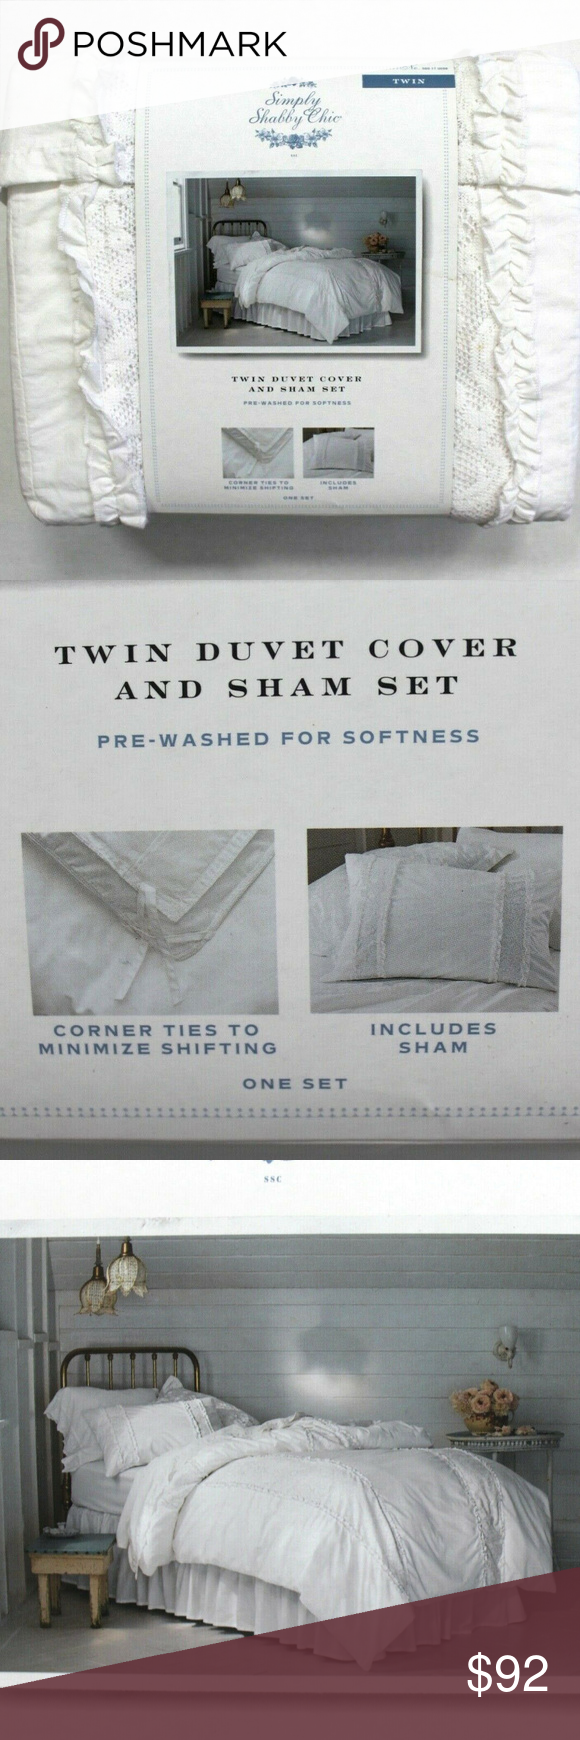 Simply Shabby Chic 2Pc Ruffle Lace Duvet Cover Set Brand new in package Simply Shabby Chic 2 Piece White Ruffle Lace Mesh Duvet Cover 038 1 Sham Size Tw  Simply Shabby Chic 2Pc Ruffle Lace Duvet Cover Set Brand new in package Simply Shabby Chic 2 Piece White Ruffle nbsp  hellip   #2pc #Brand #Chic #Cover #Duvet #Lace #mesh #package #Piece #ruffle